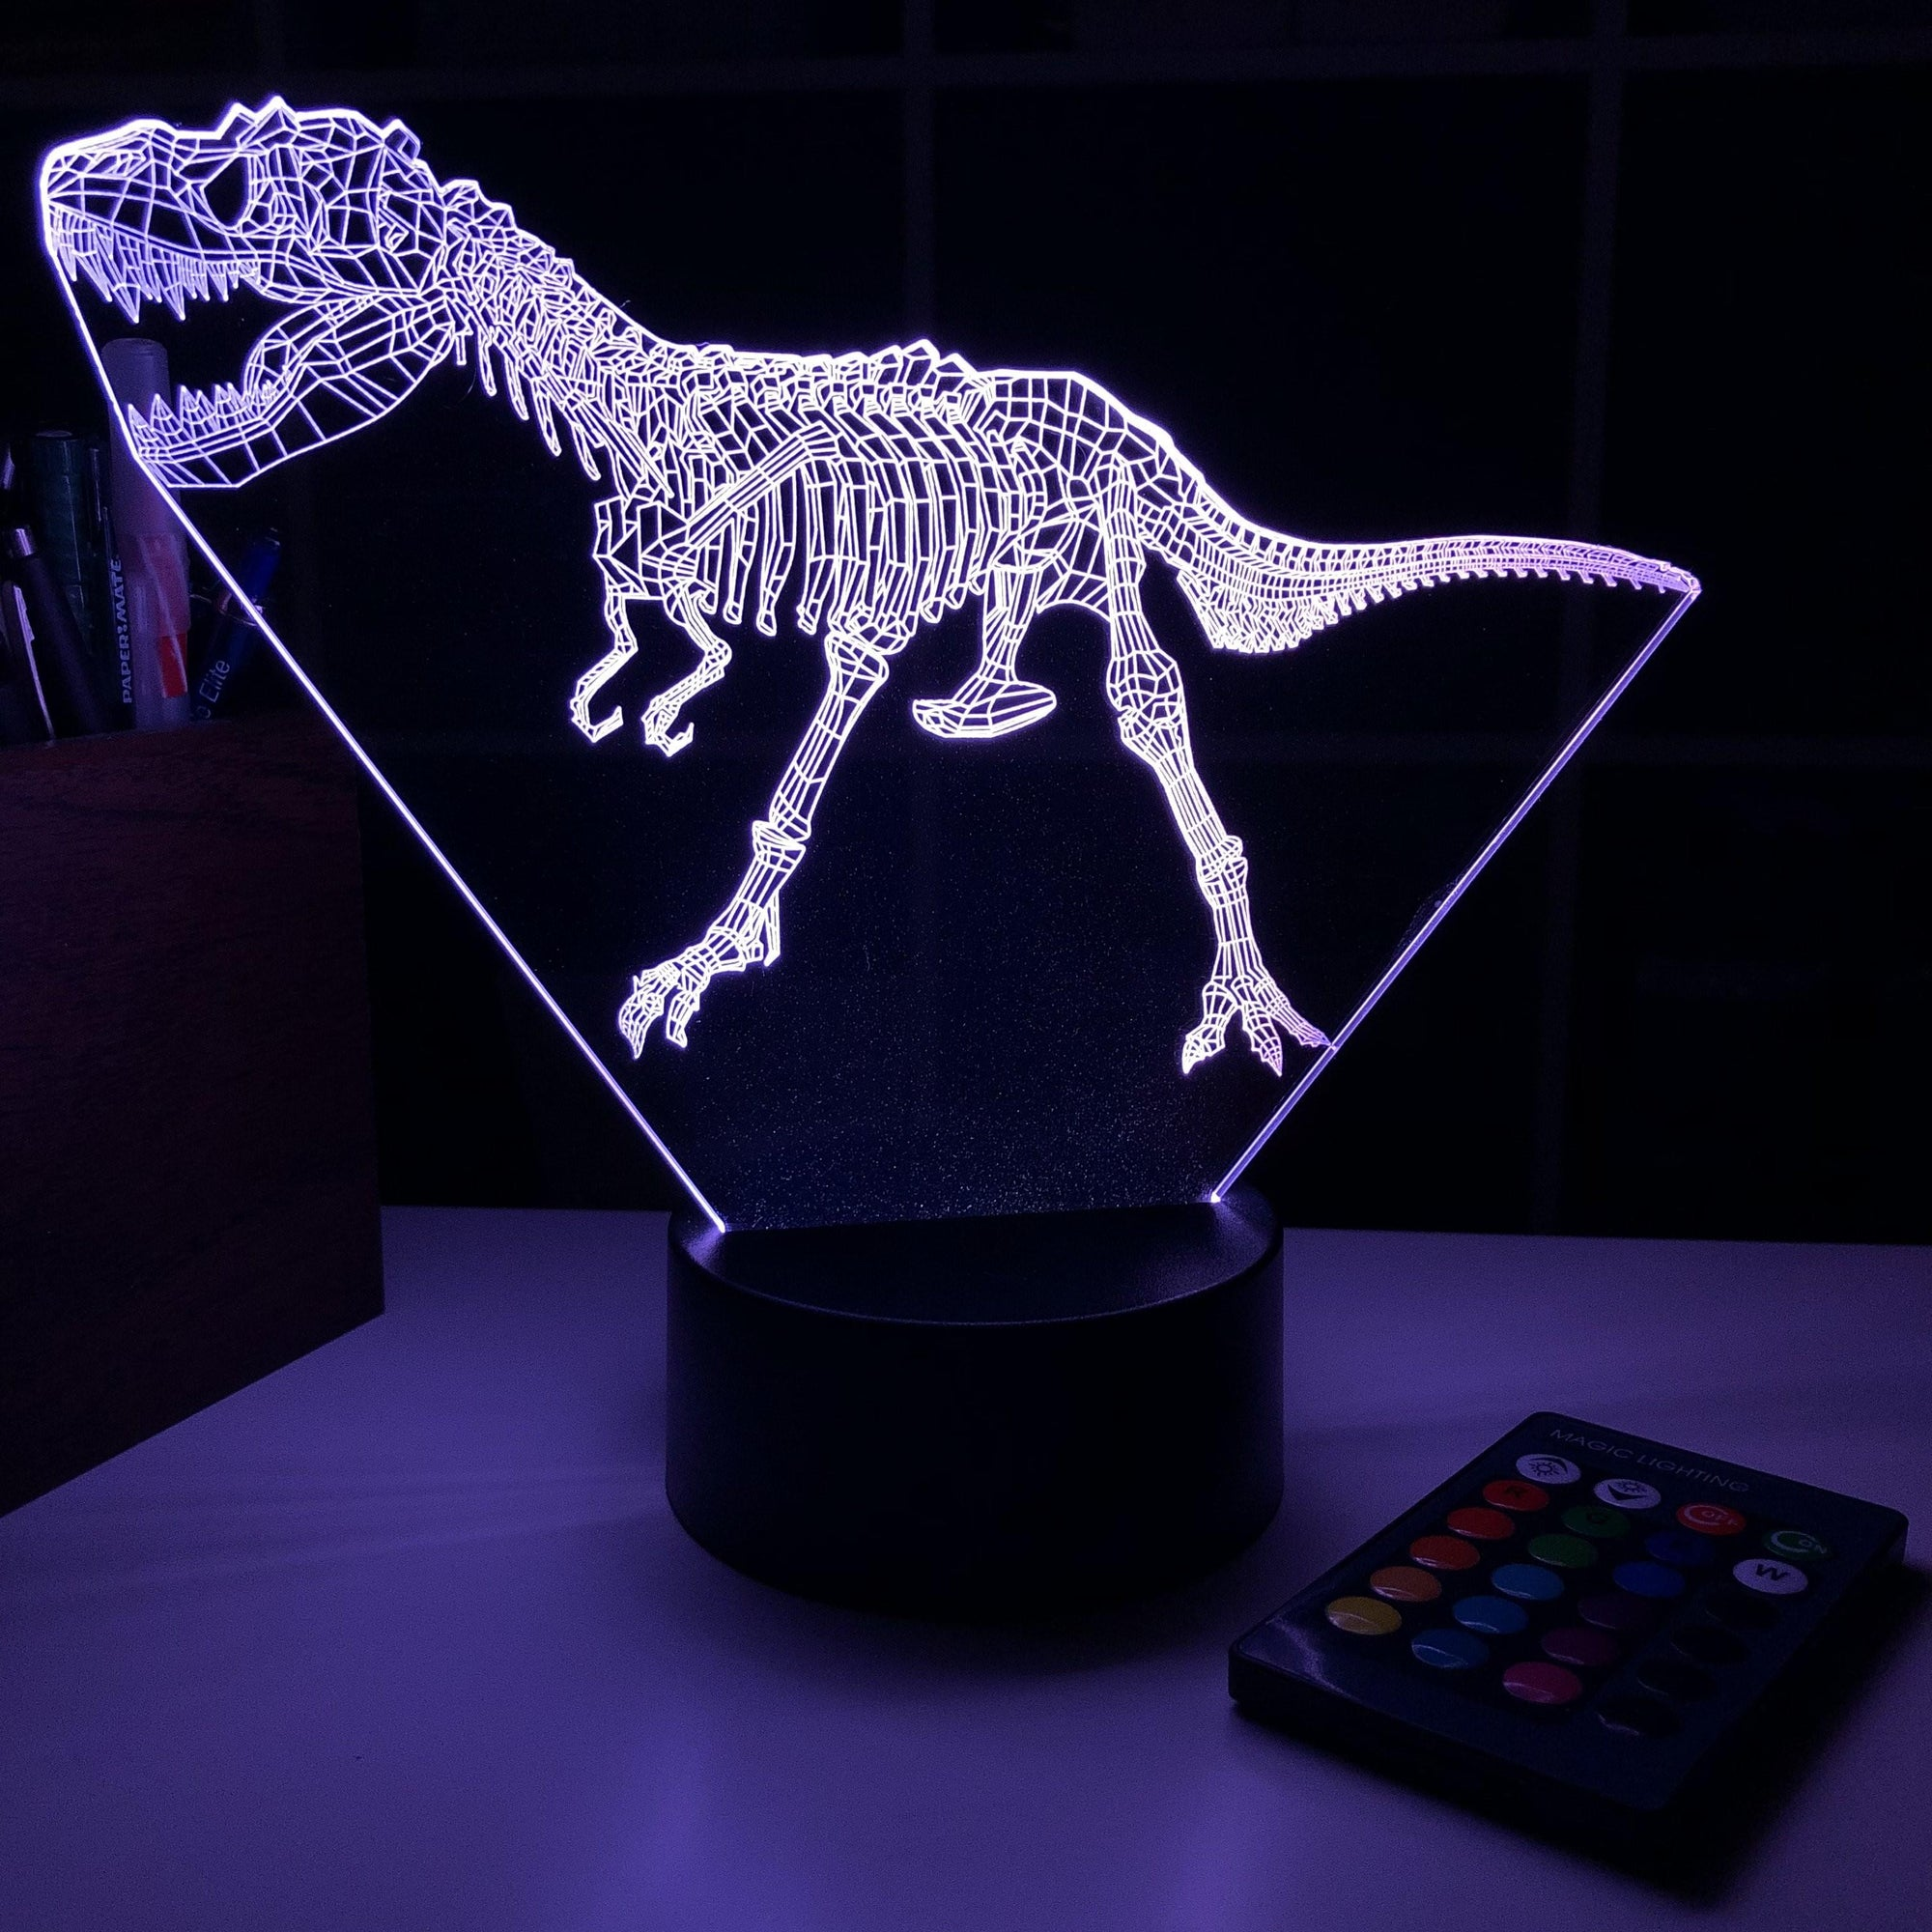 Tyrannosaurus Rex Dinosaur Bones - 3D Optical Illusion Lamp - carve-craftworks-llc